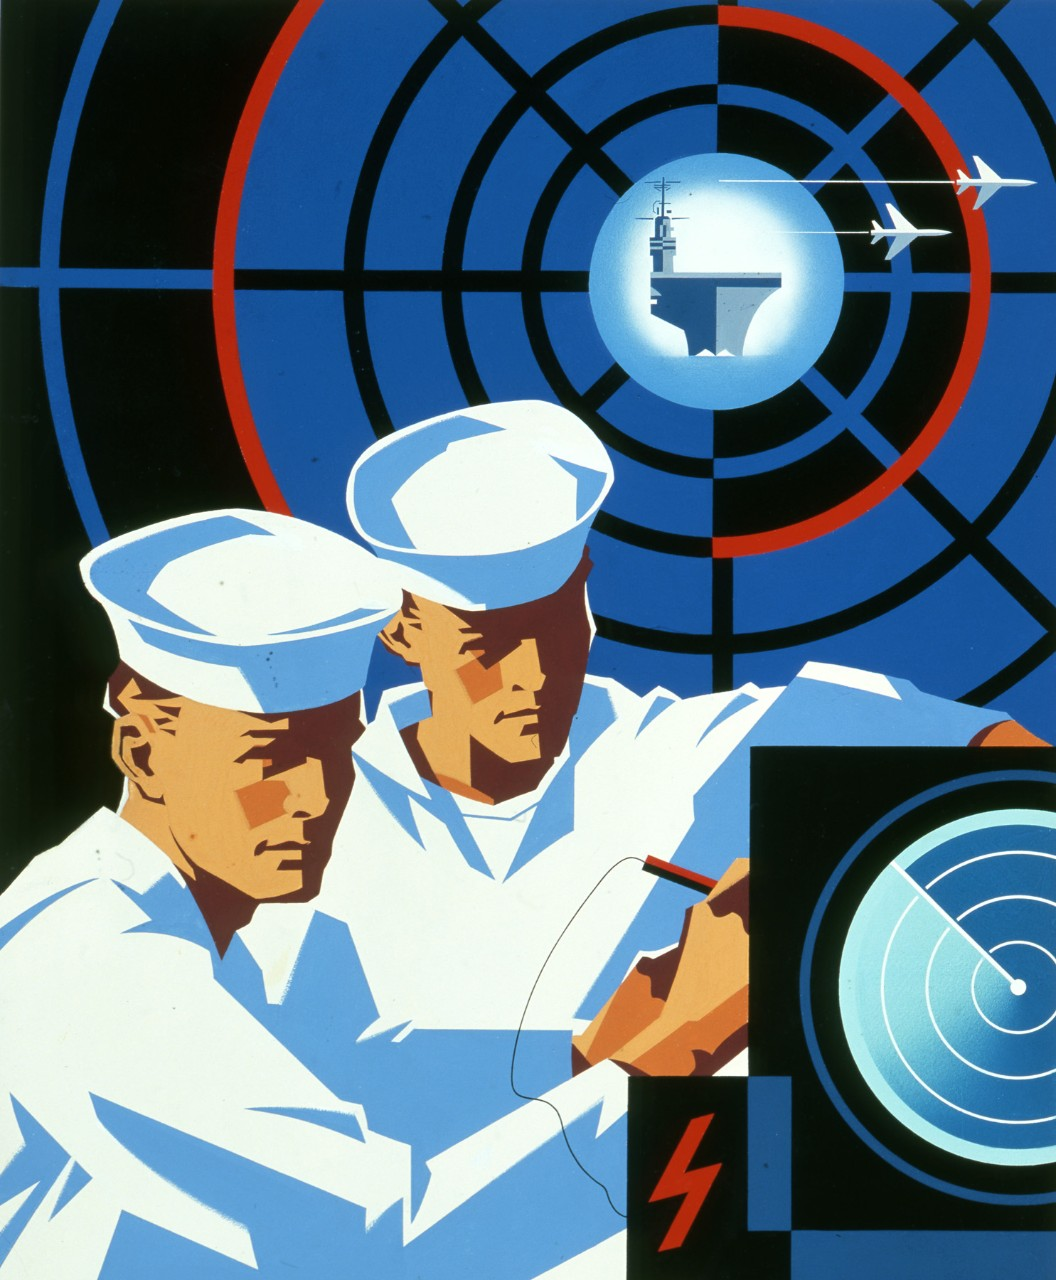 Two sailors work on a radar console, in the background is an image of a radar screen with an aircraft carrier in the center.